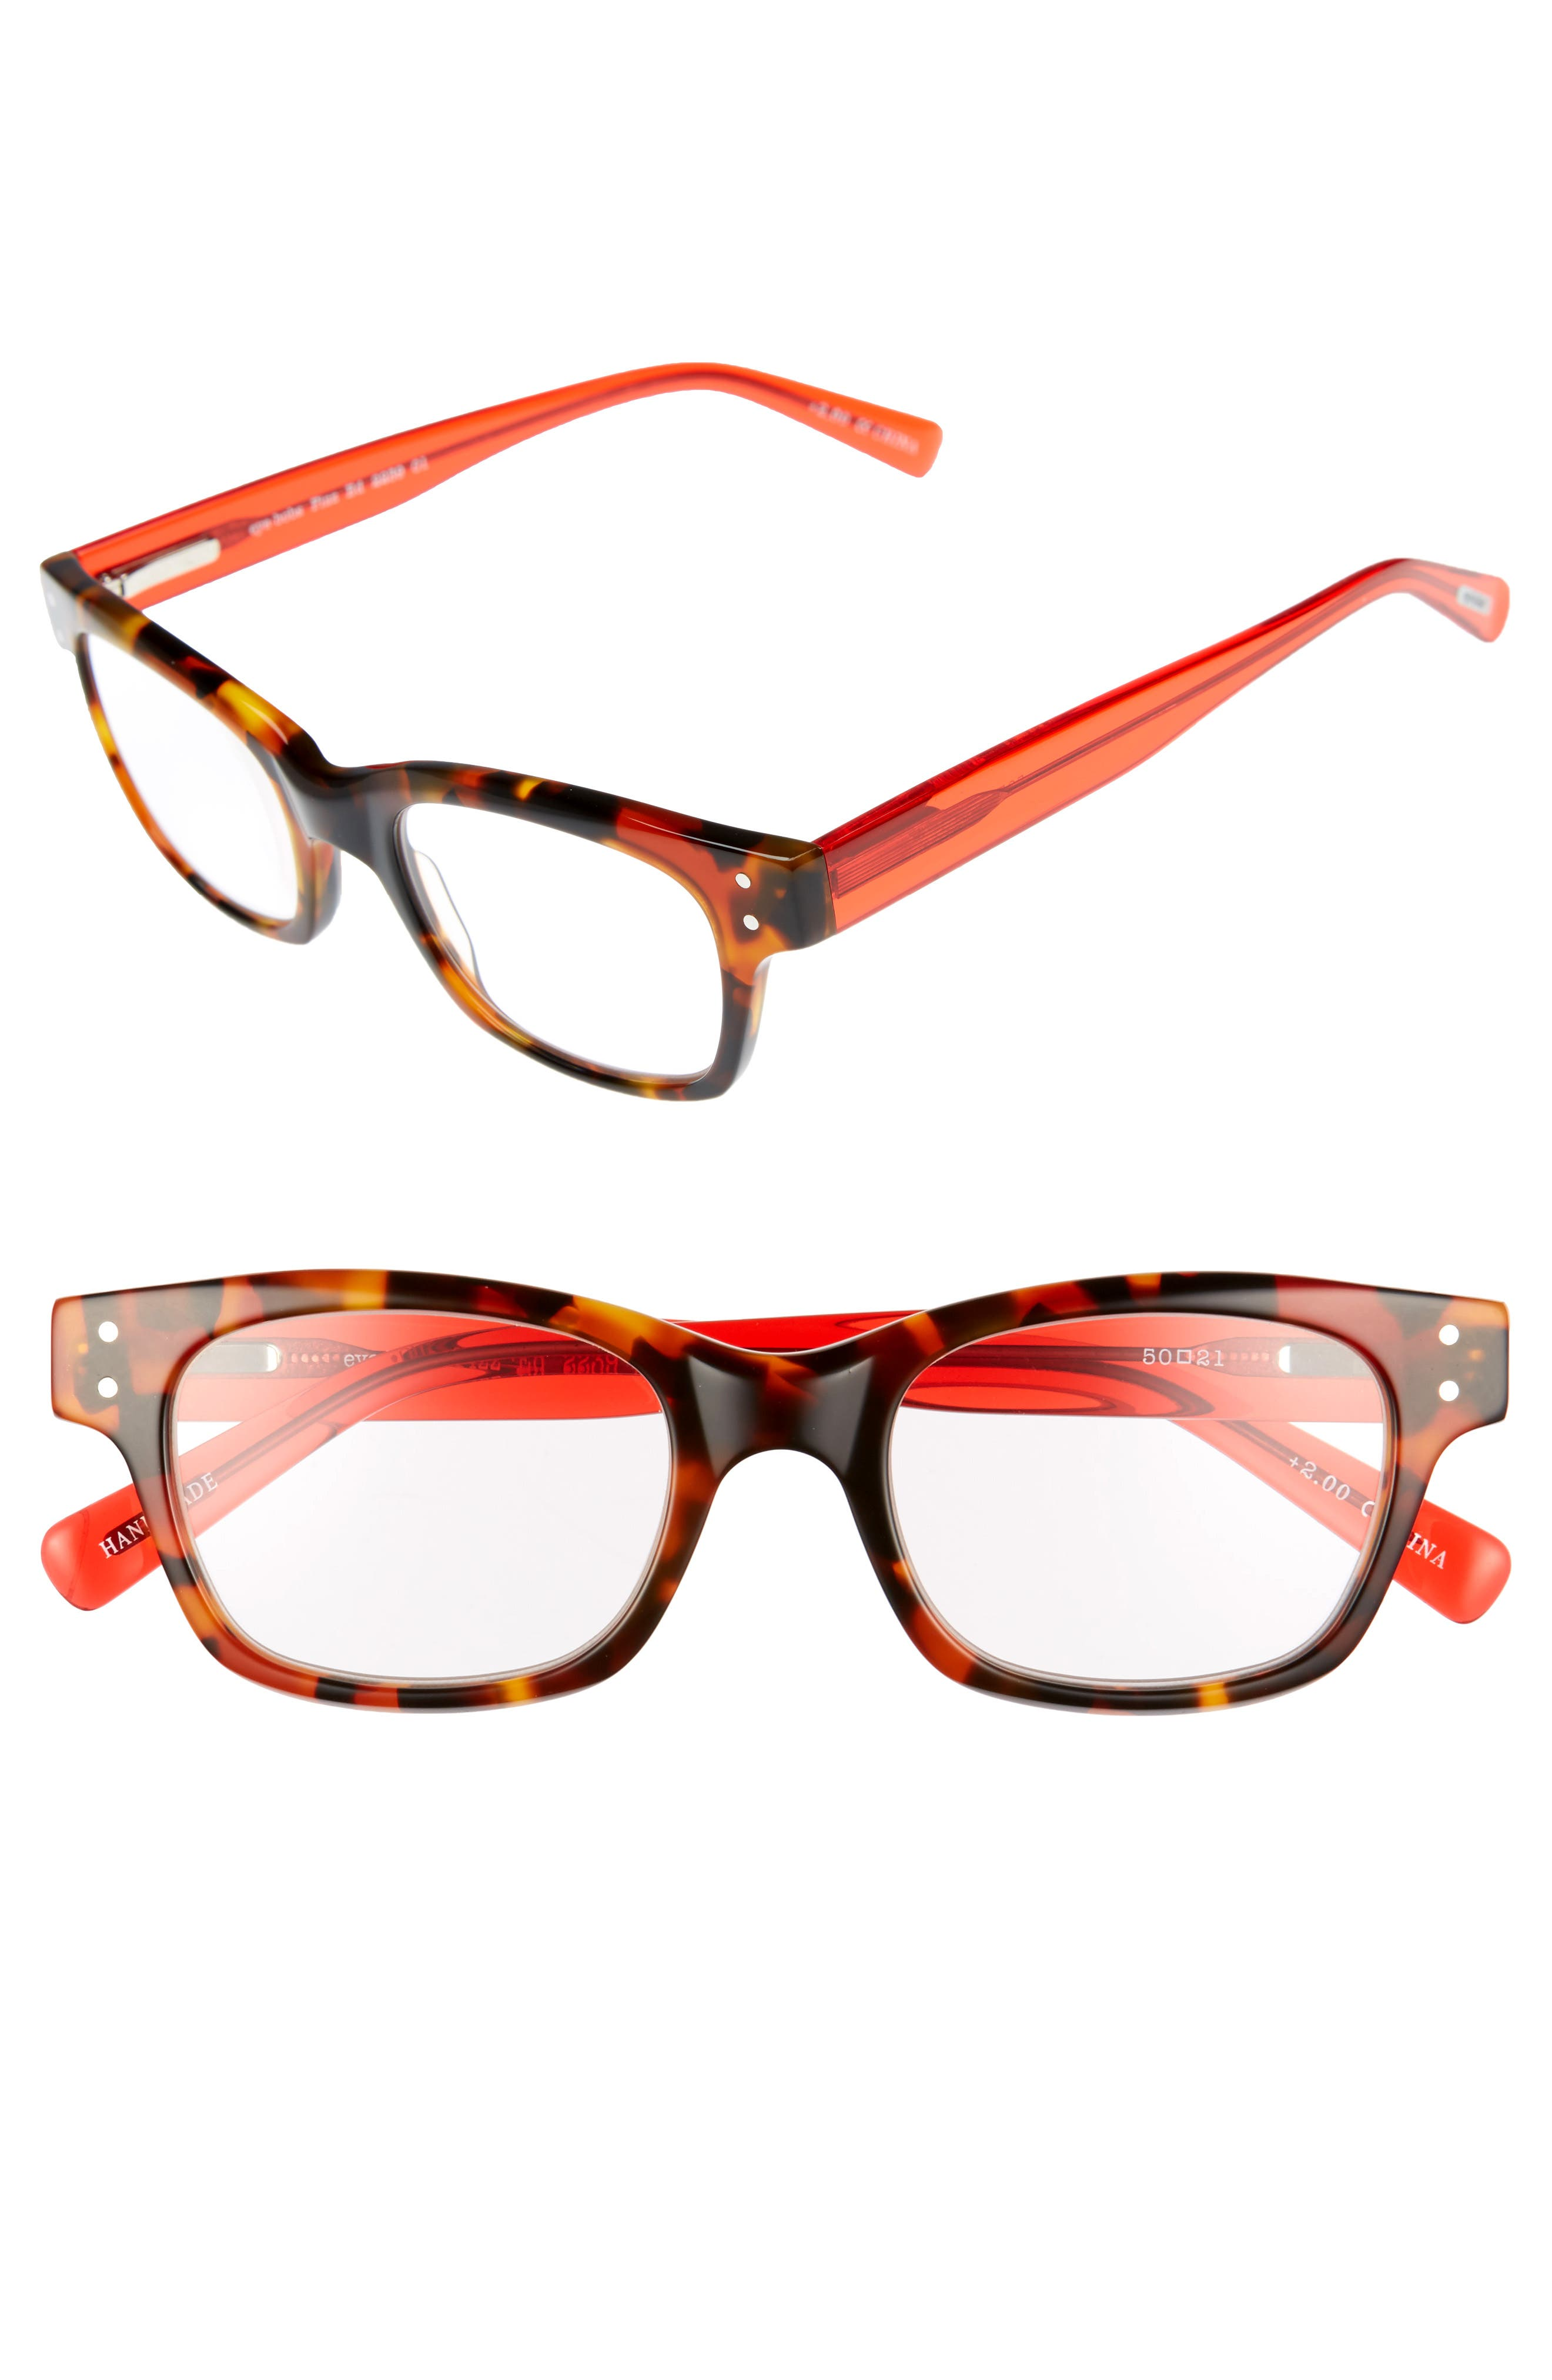 Fizz Ed 50mm Reading Glasses,                         Main,                         color, Tortoise With Red